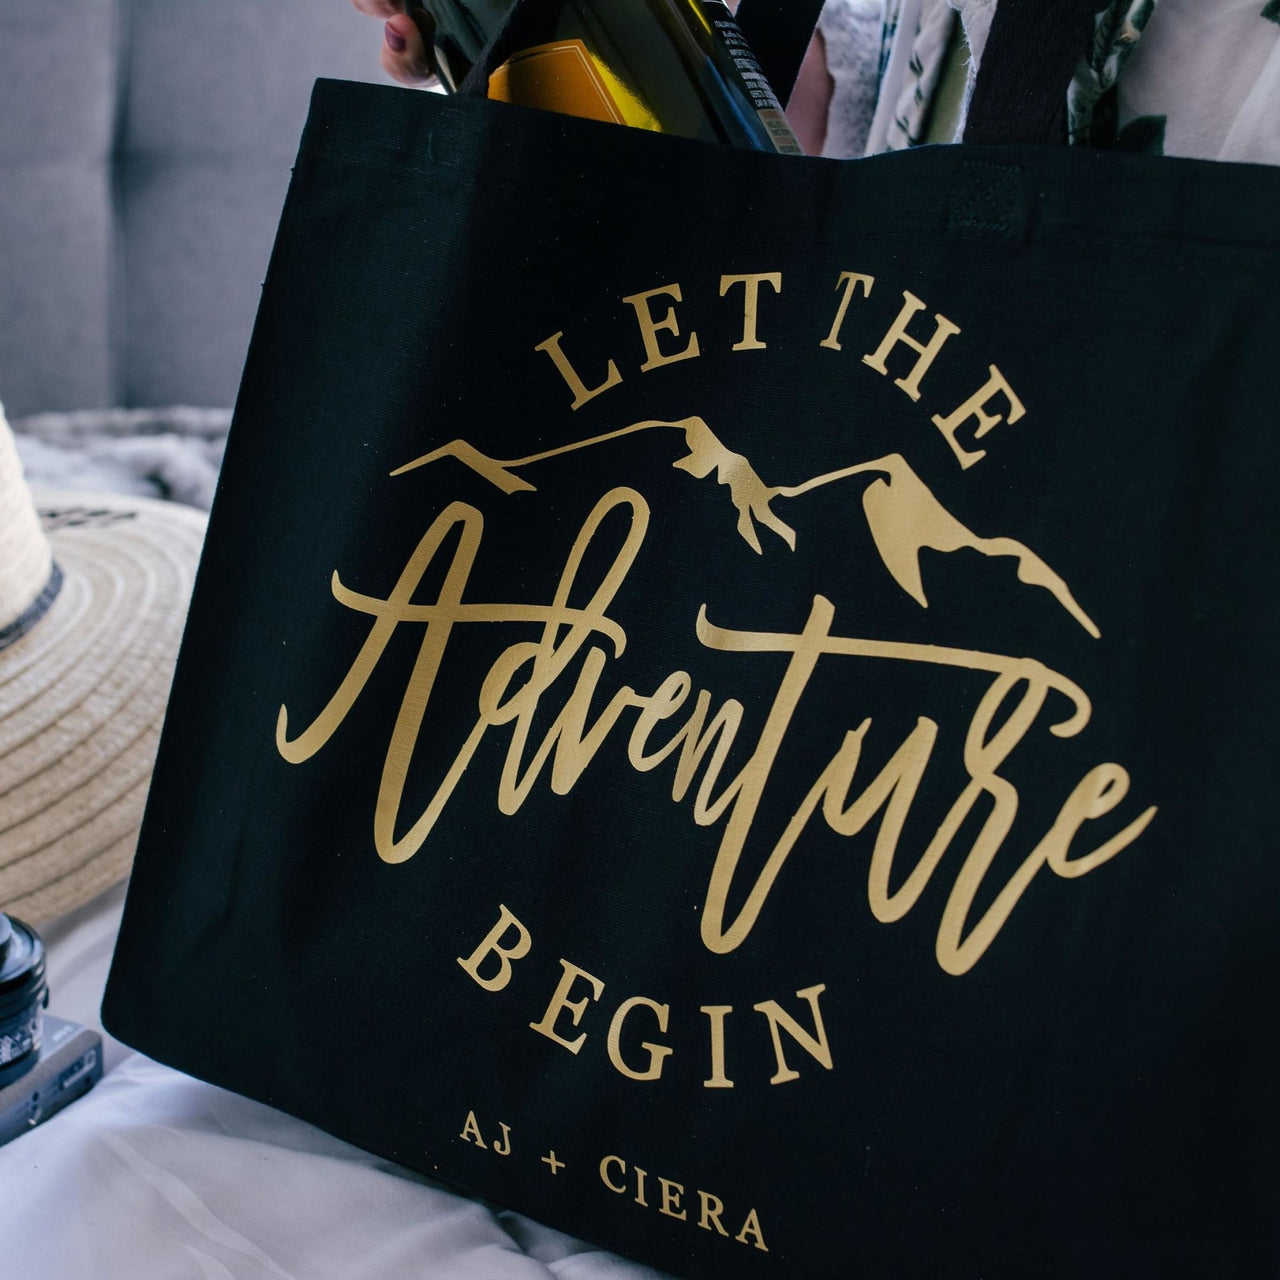 Let The Adventure Begin Canvas Tote Bag - Rich Design Co